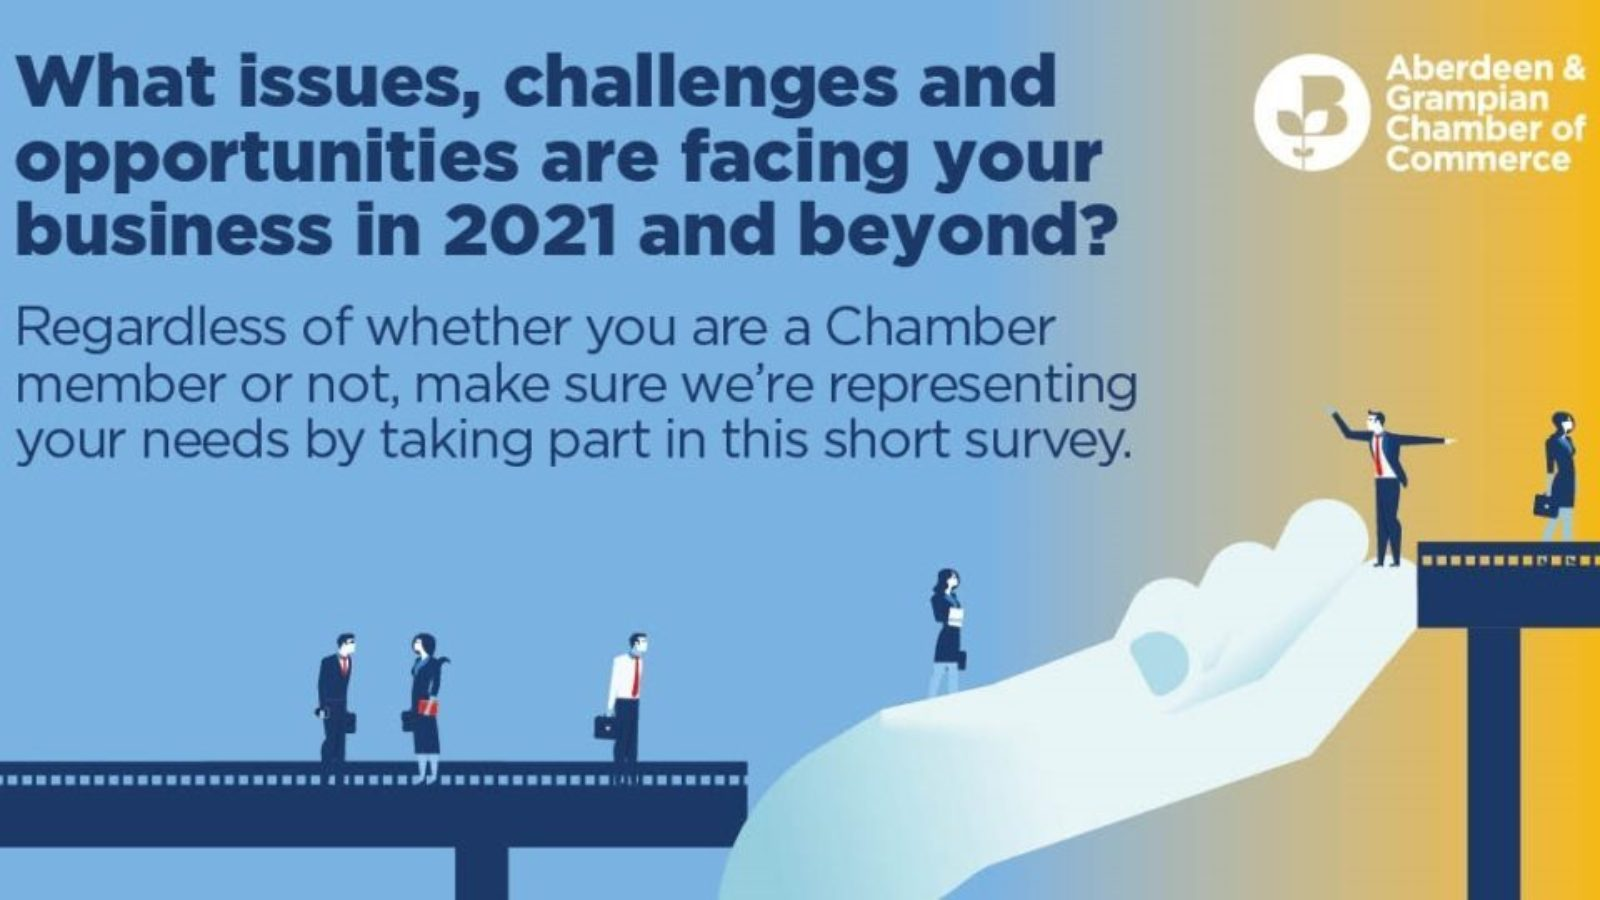 Aberdeen and Aberdeenshire Business in 2021 and Beyond: Chamber launches survey to understand post-pandemic plans